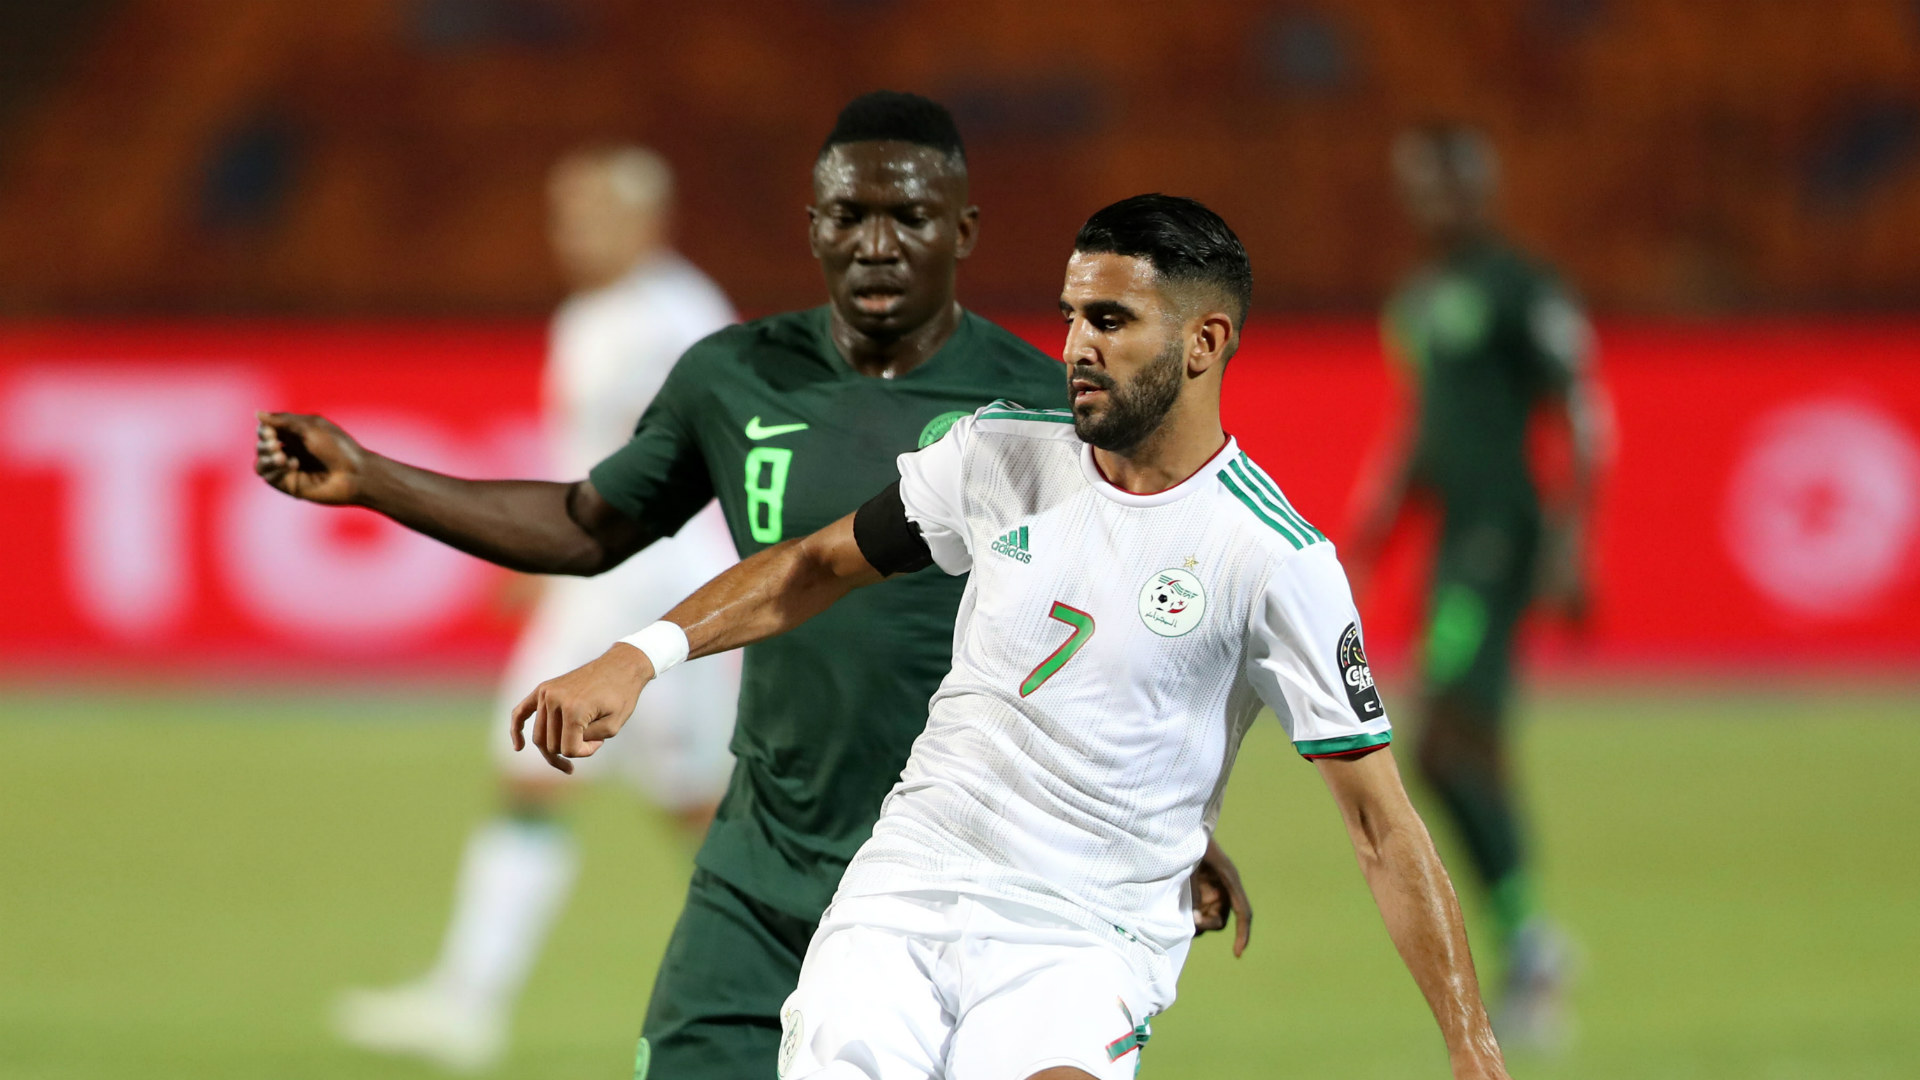 West rates Mahrez as one of the best players in the world ahead of Nigeria vs Algeria friendly